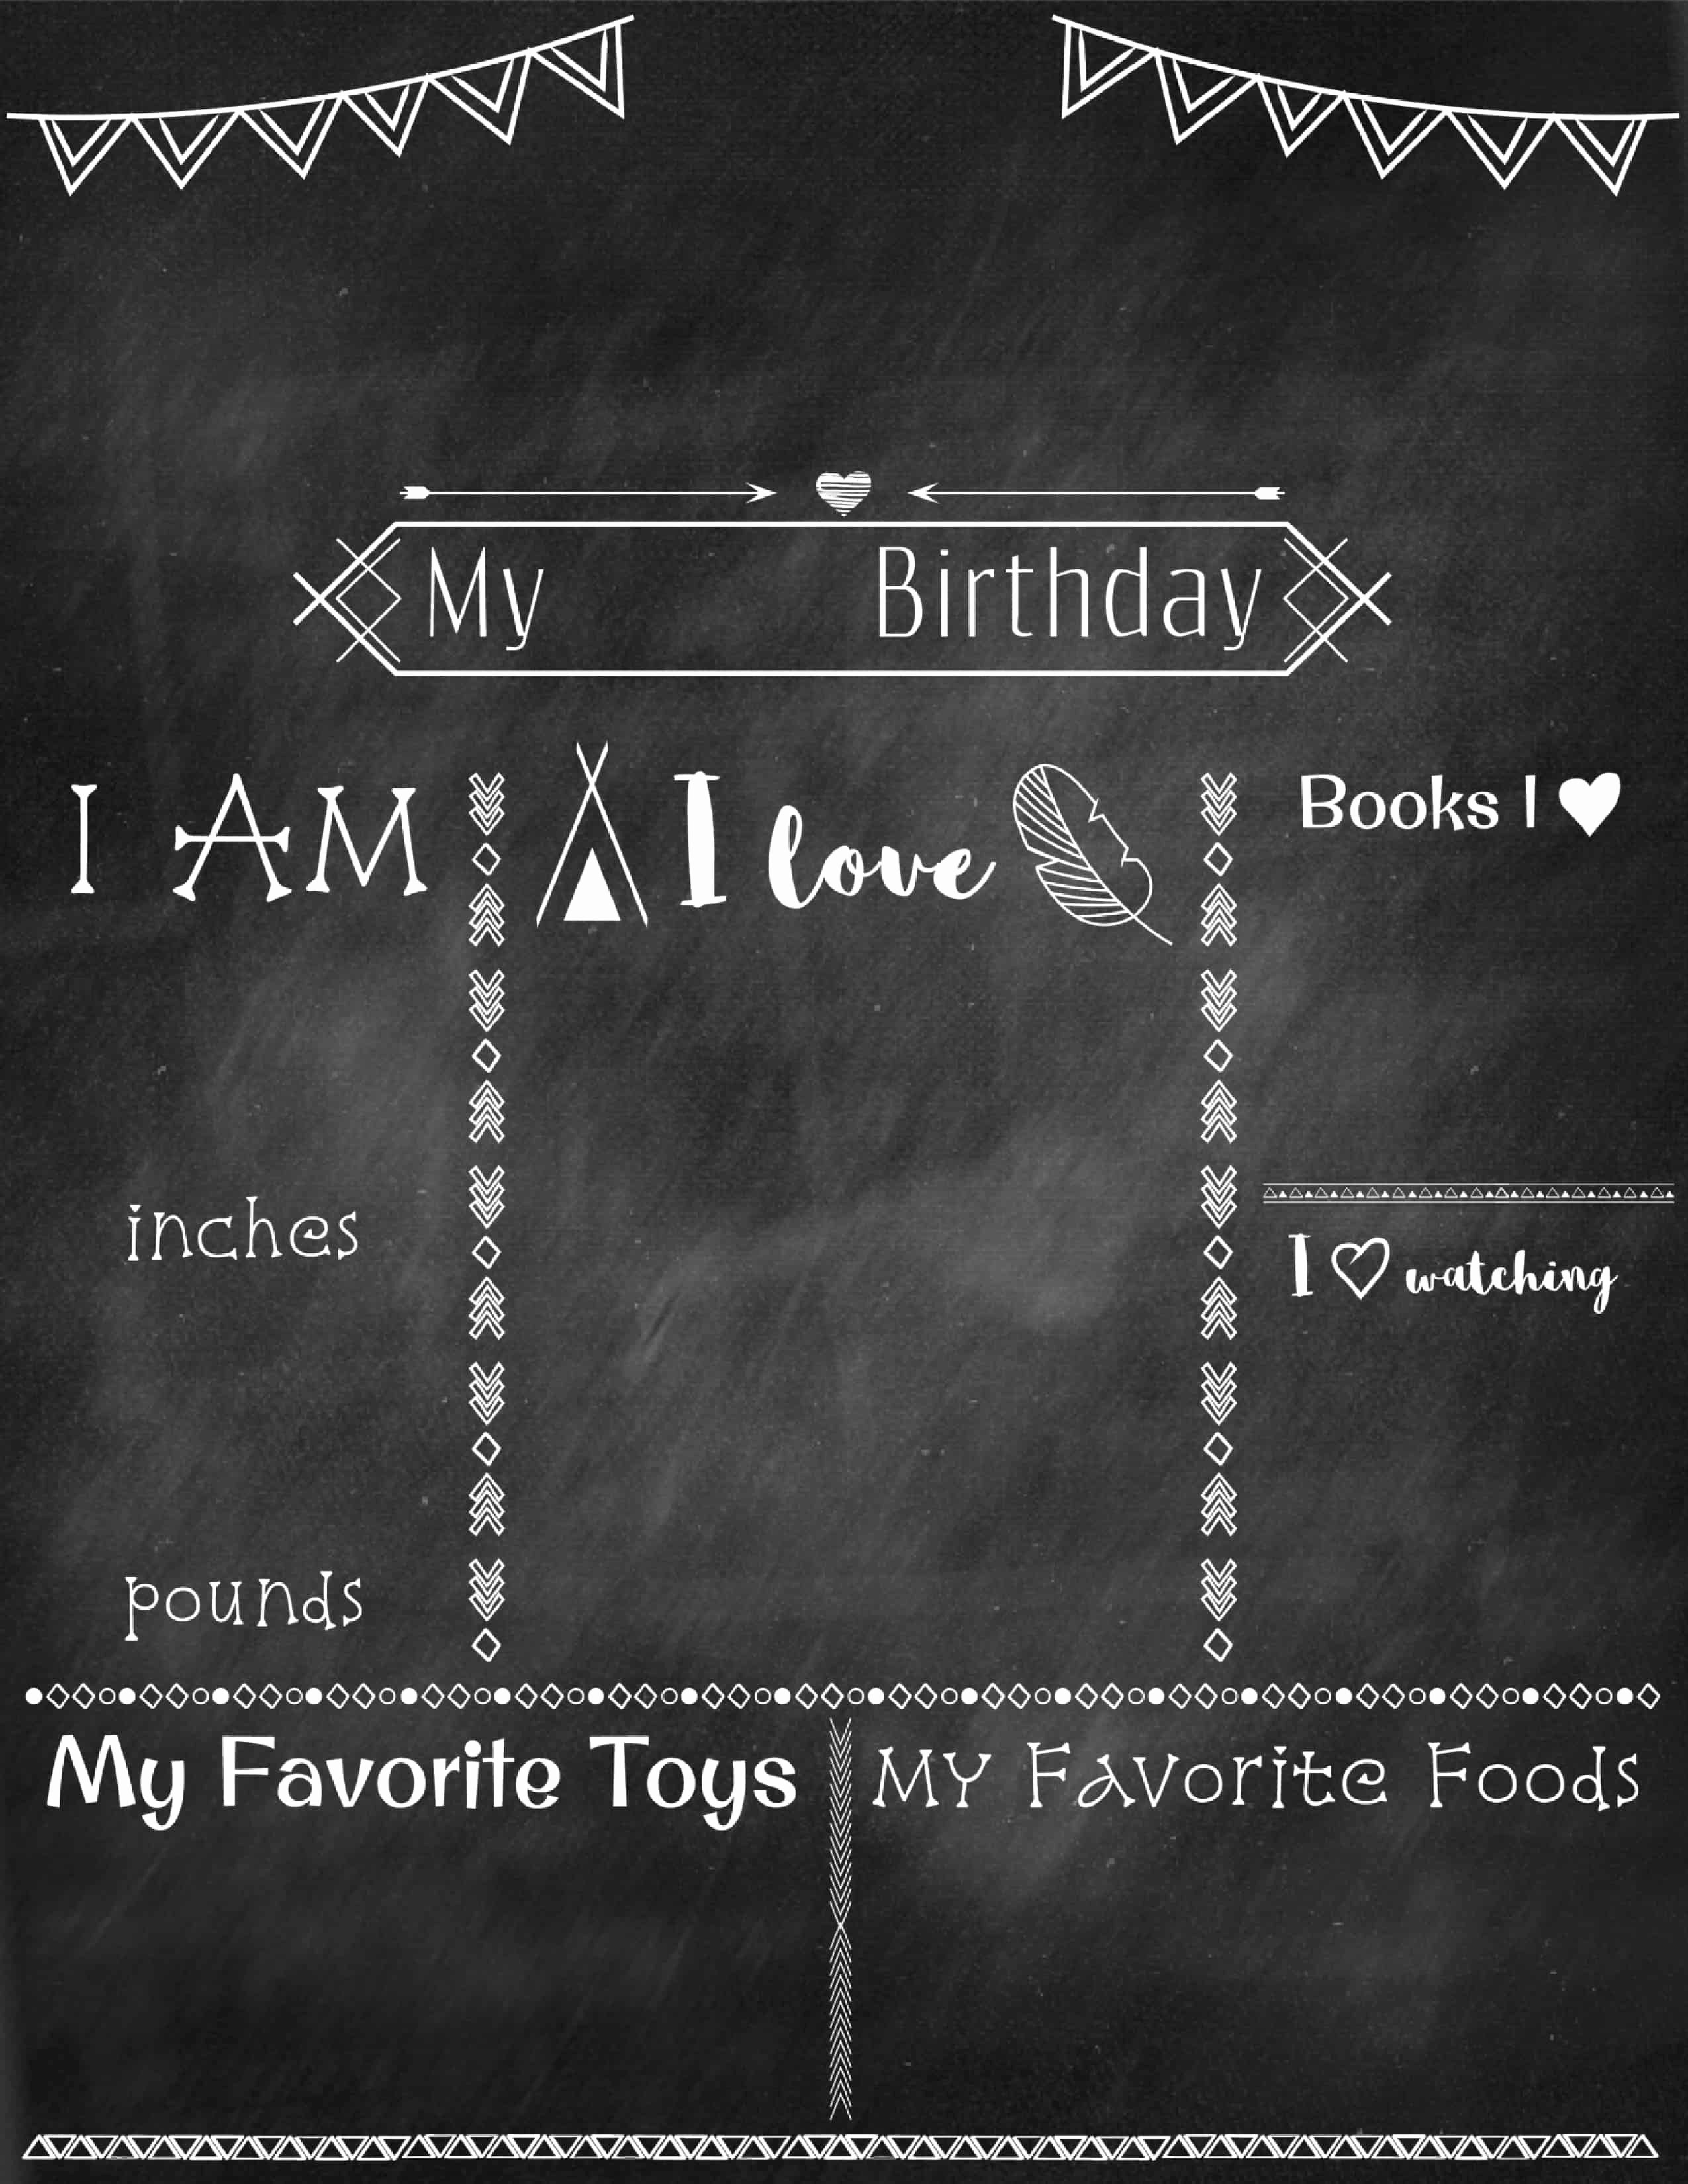 Free Birthday Chalkboard Template New Birthday Poster Template Free with Step by Step Tutorial